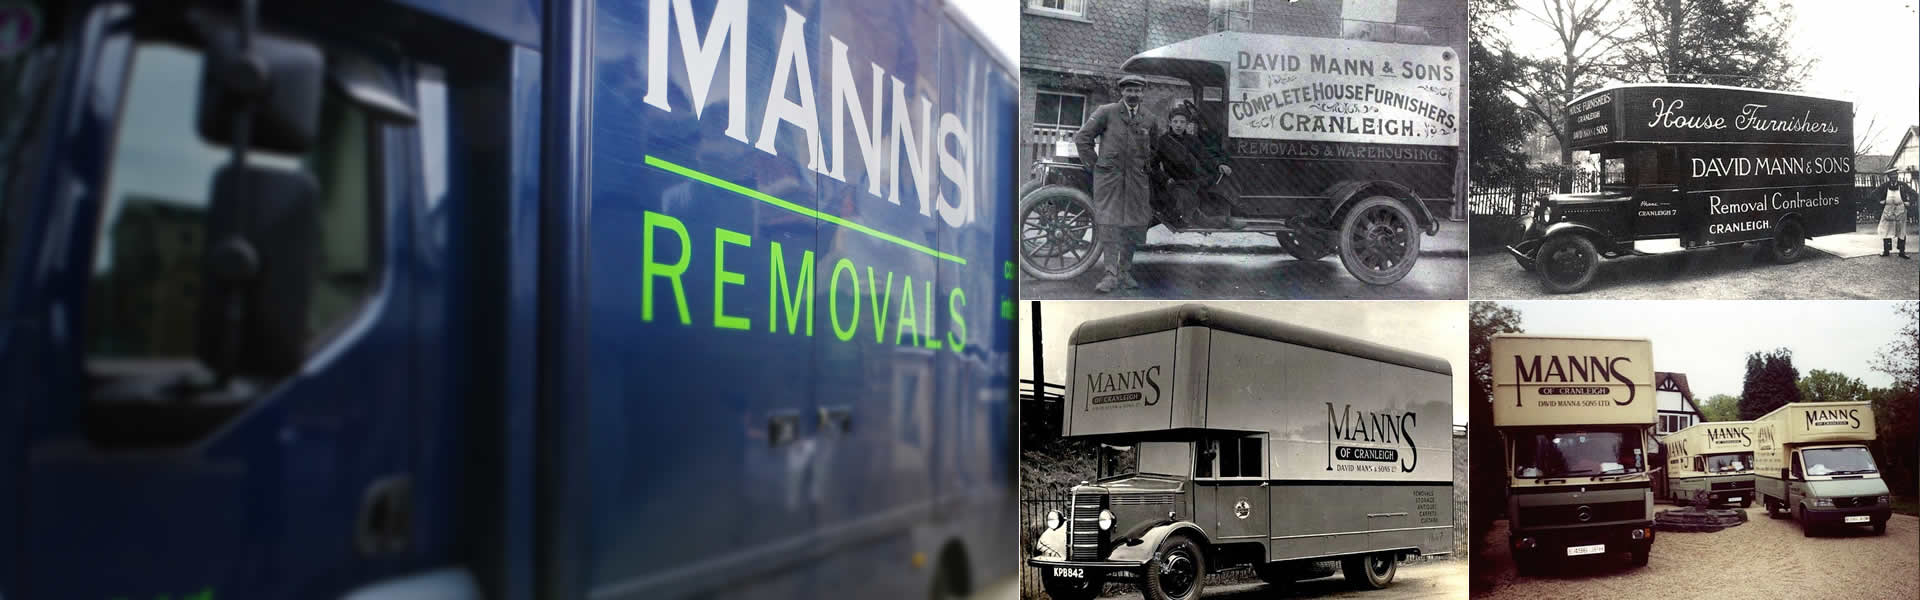 Moving homes in Surrey and beyond since 1887